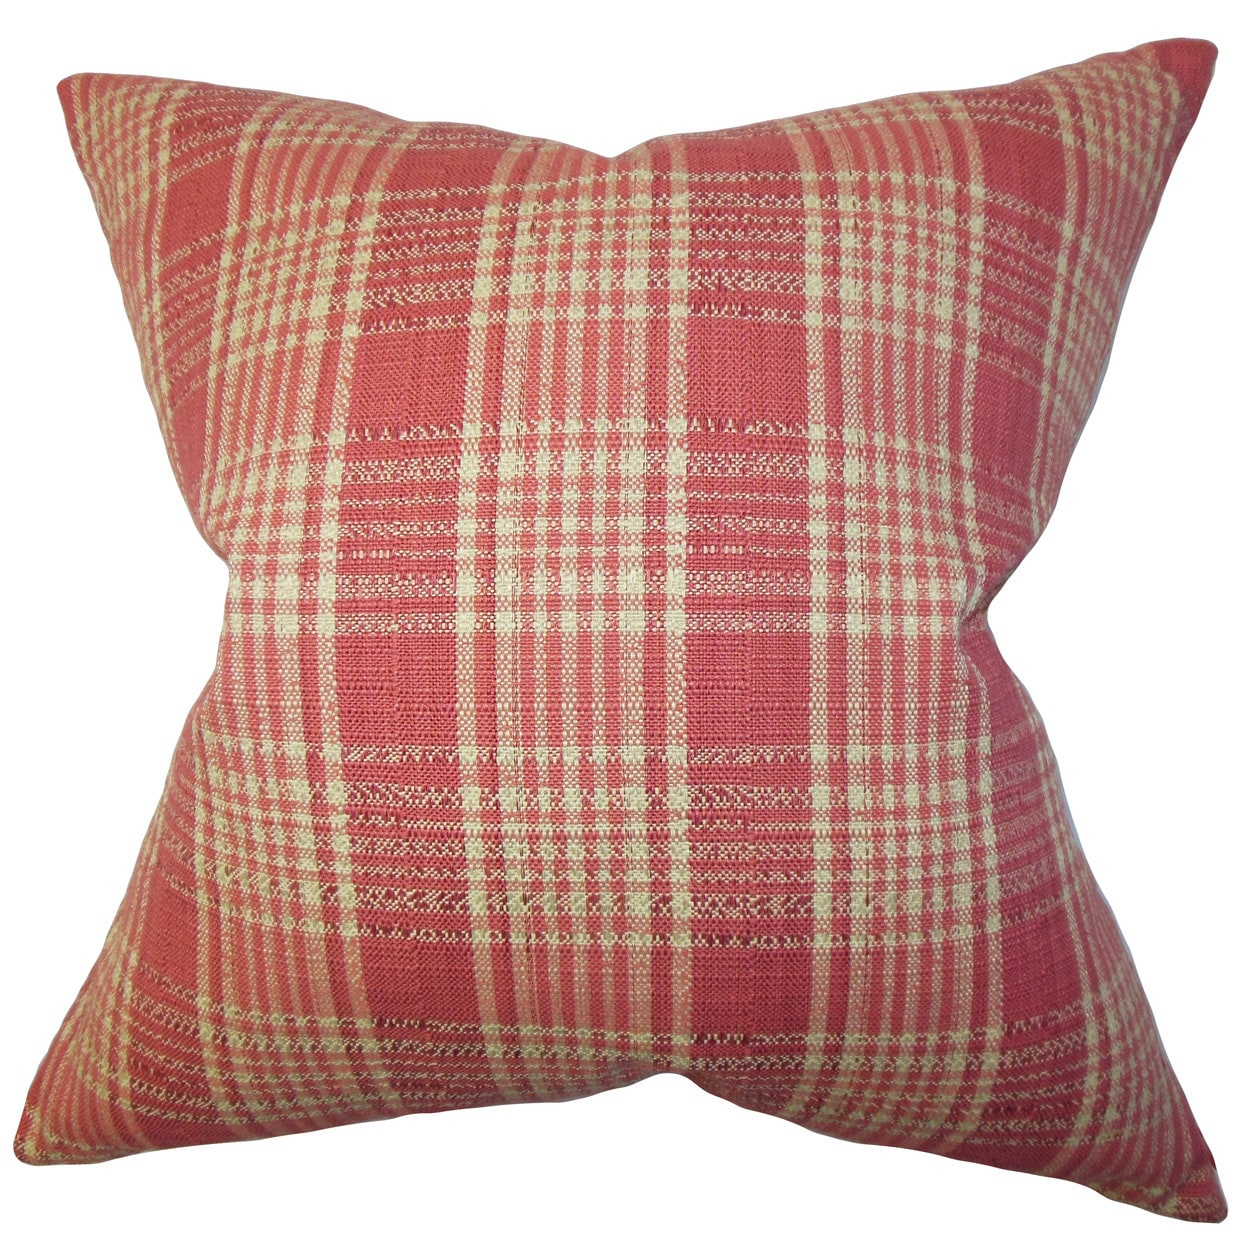 The Pillow Collection Indre Plaid Bedding Sham Red Queen//20 x 30